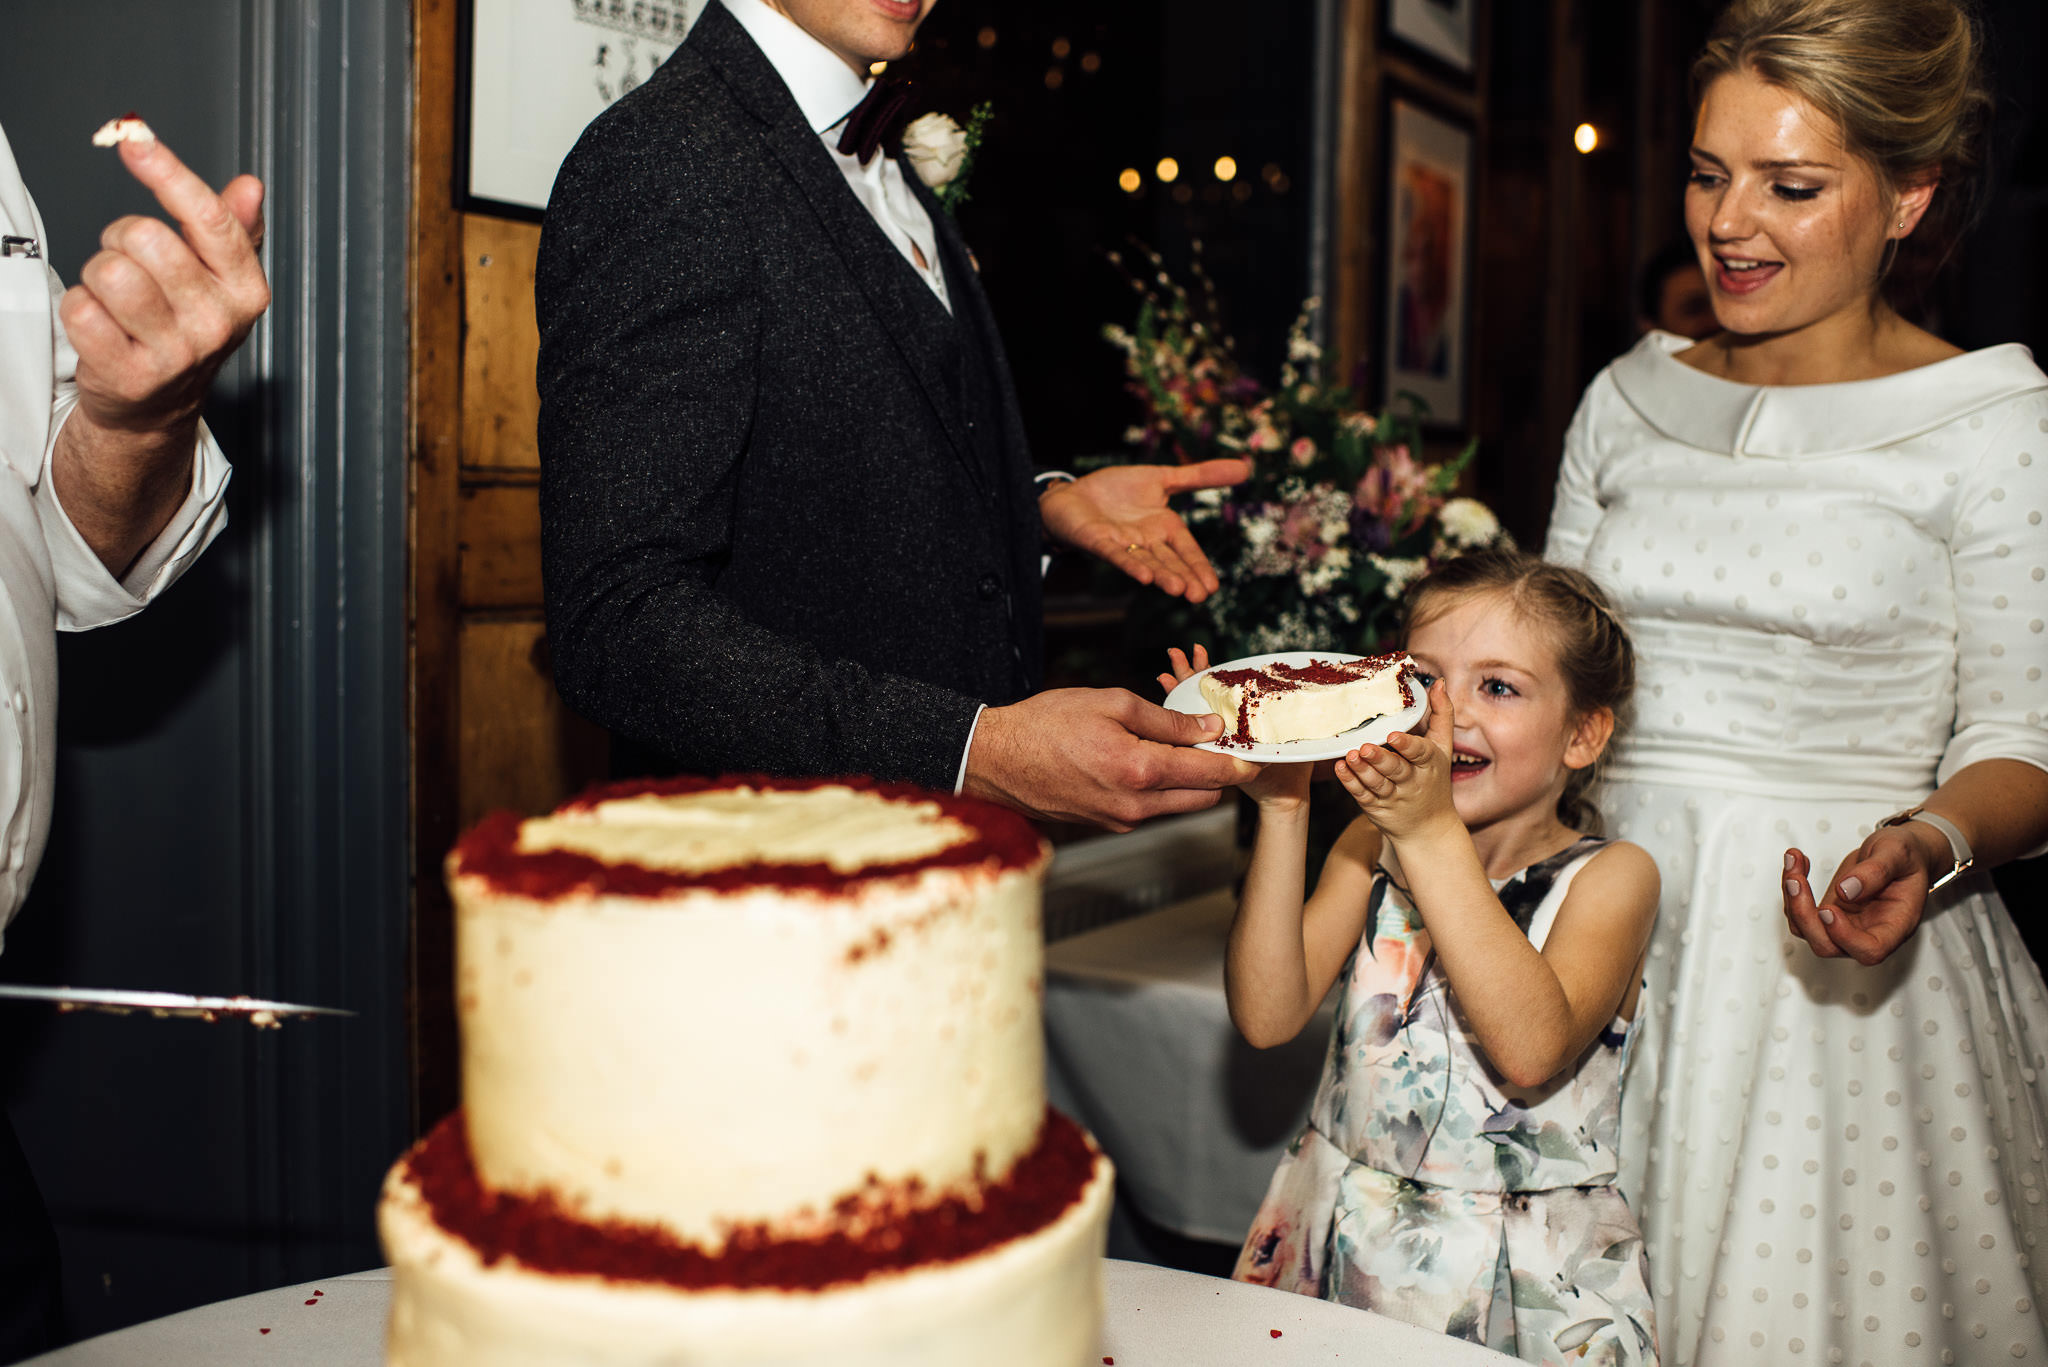 Ooh lou lou red velvet vegan wedding cake in stoke newington town hall wedding by creative and alternative london wedding photographer the shannons photography